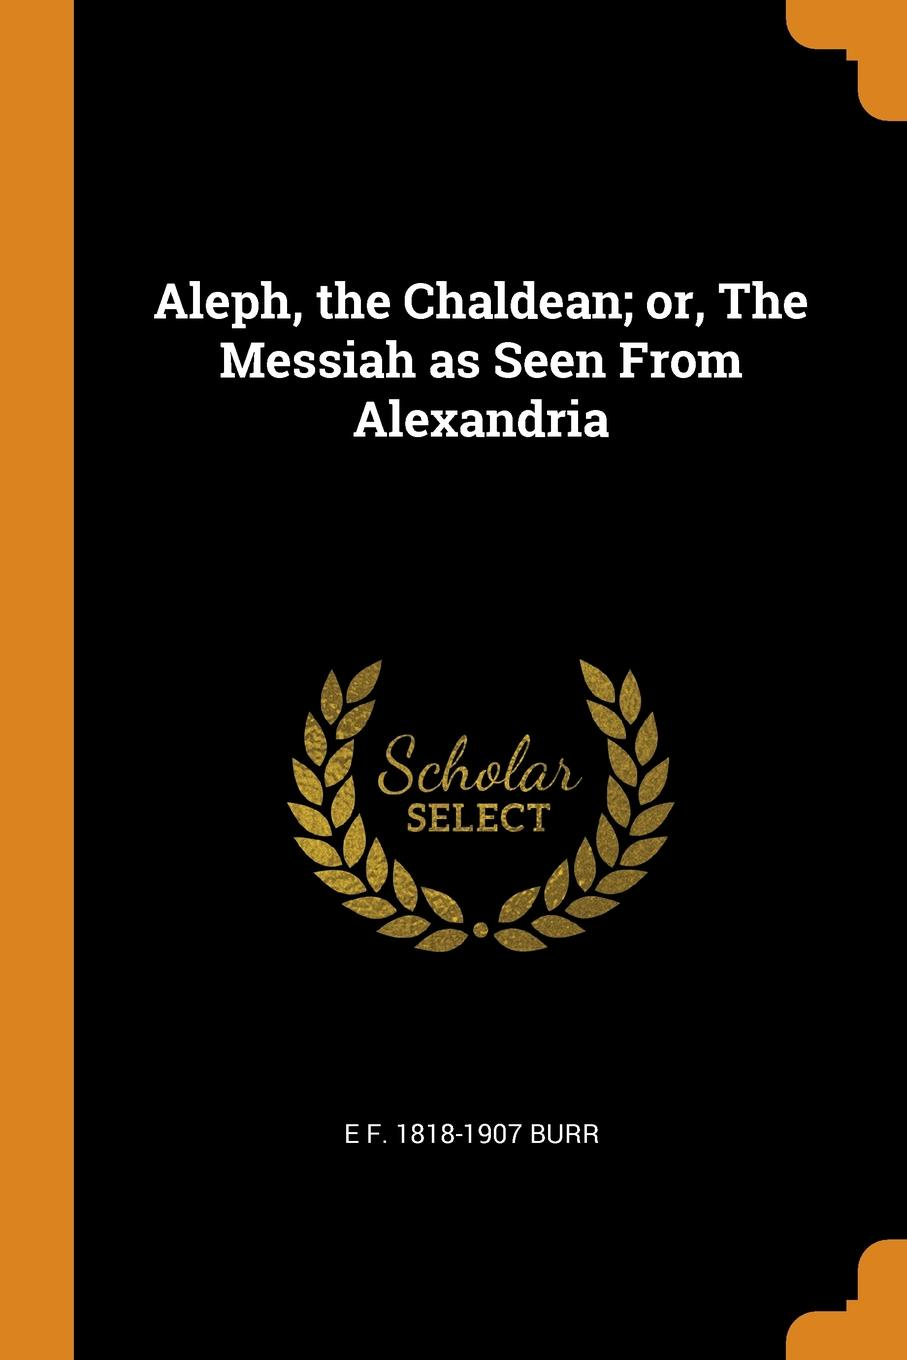 E F. 1818-1907 Burr Aleph, the Chaldean; or, The Messiah as Seen From Alexandria aleph